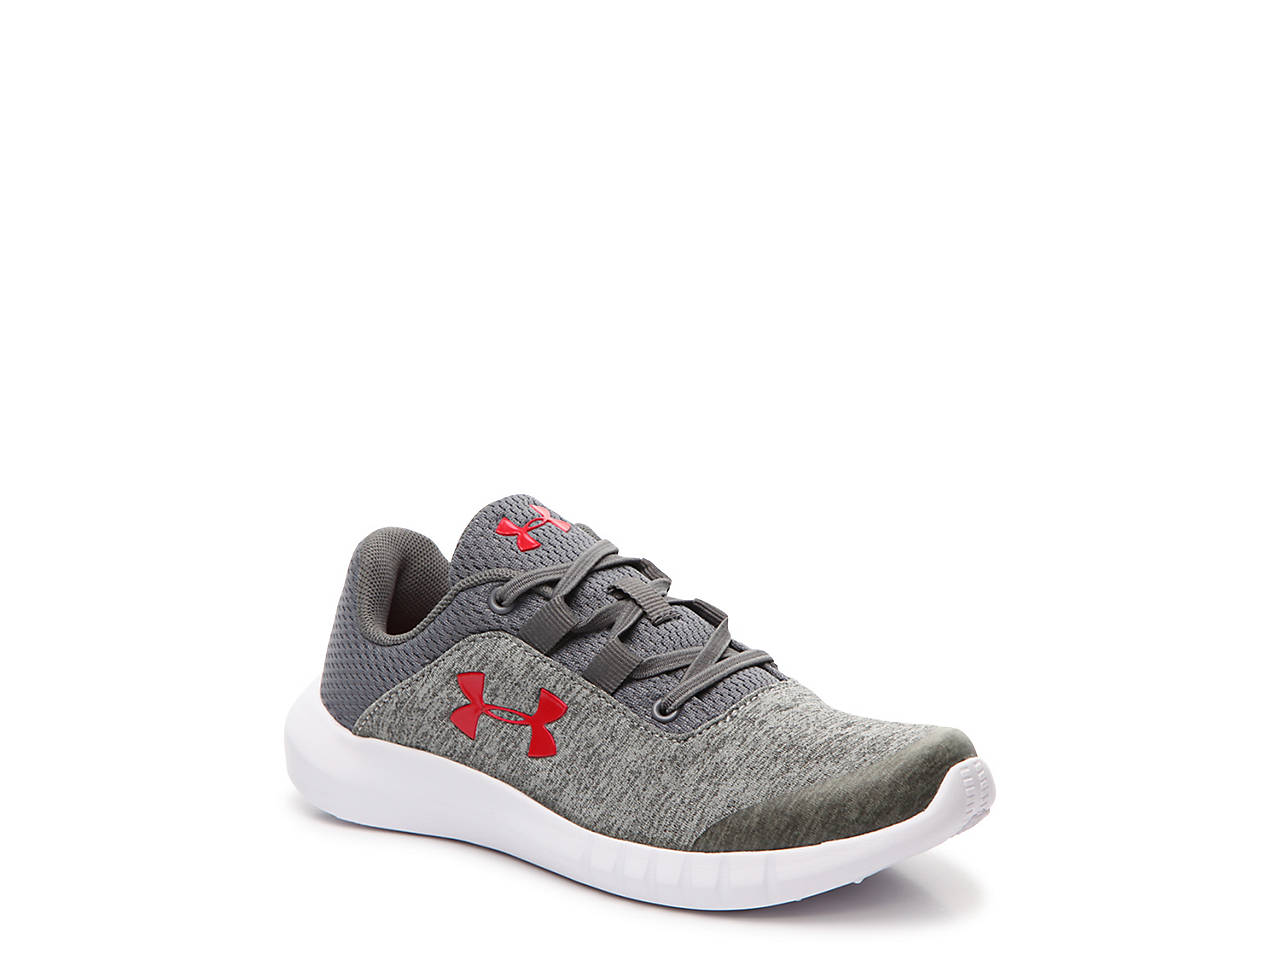 fc8150753d45 Under Armour Mojo Toddler   Youth Sneaker Kids Shoes